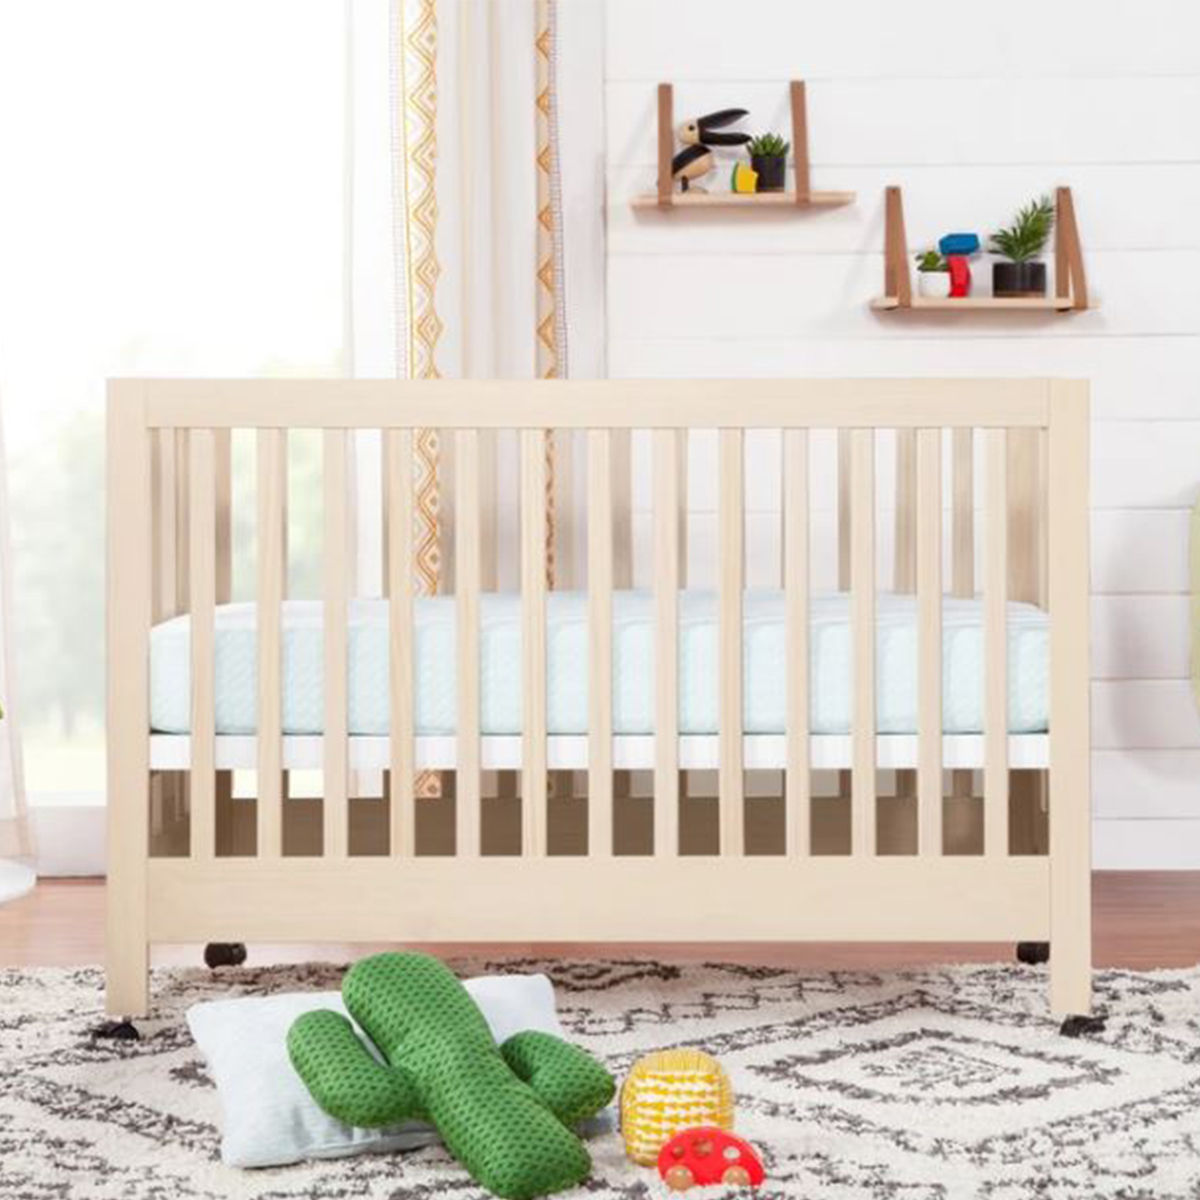 Babyletto Maki Full Size Portable Folding Crib With Toddler Bed Conversion Kit Thetot